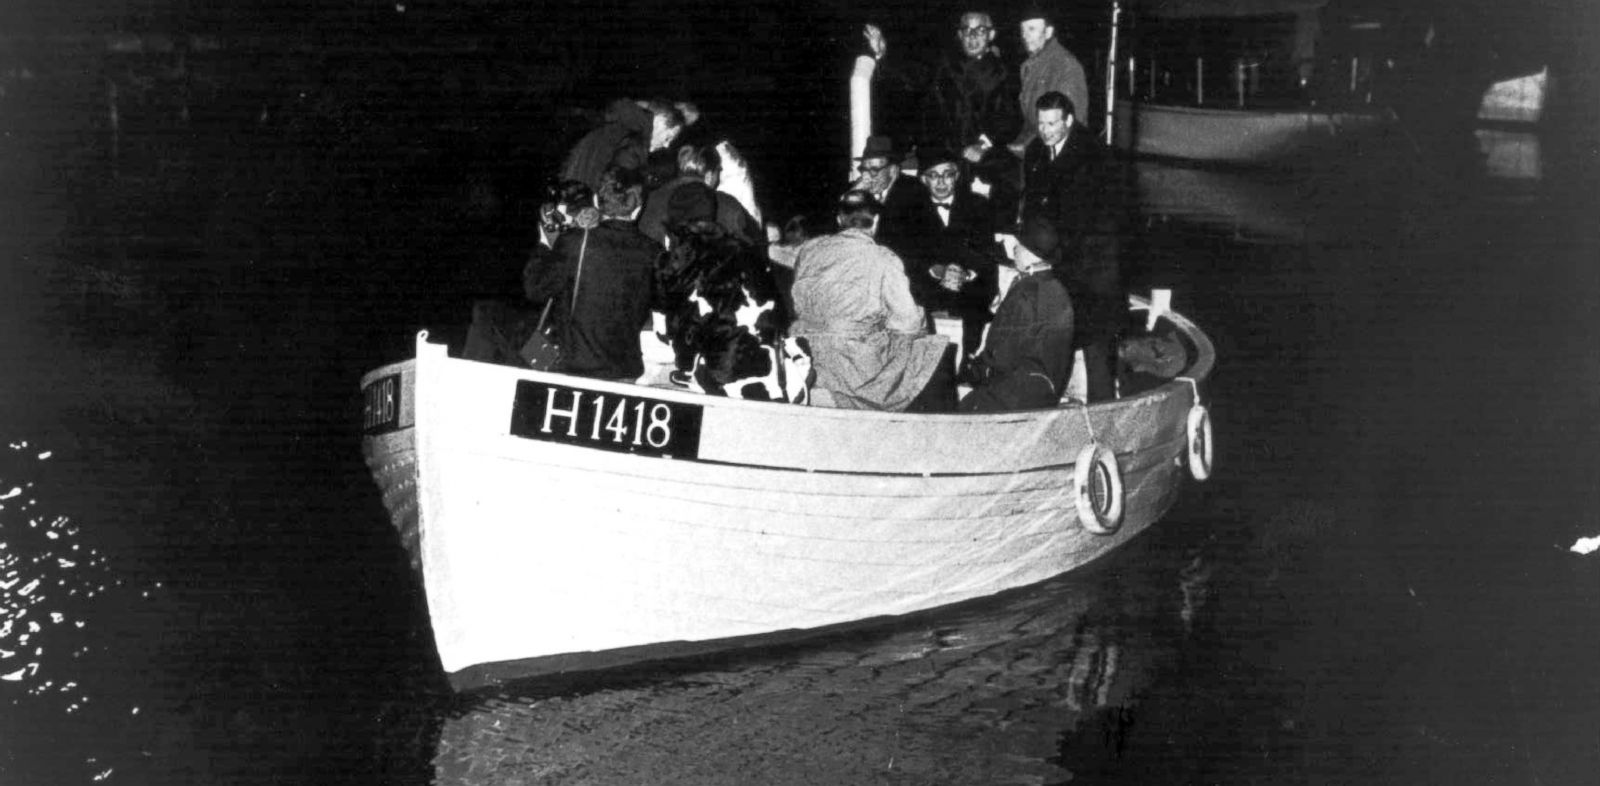 PHOTO: This 1943 photo shows a boat carrying people during the escape across the Oresound of some of 7,000 Danish Jews who fled to safety in neighboring Sweden three years after the German Nazi invasion.